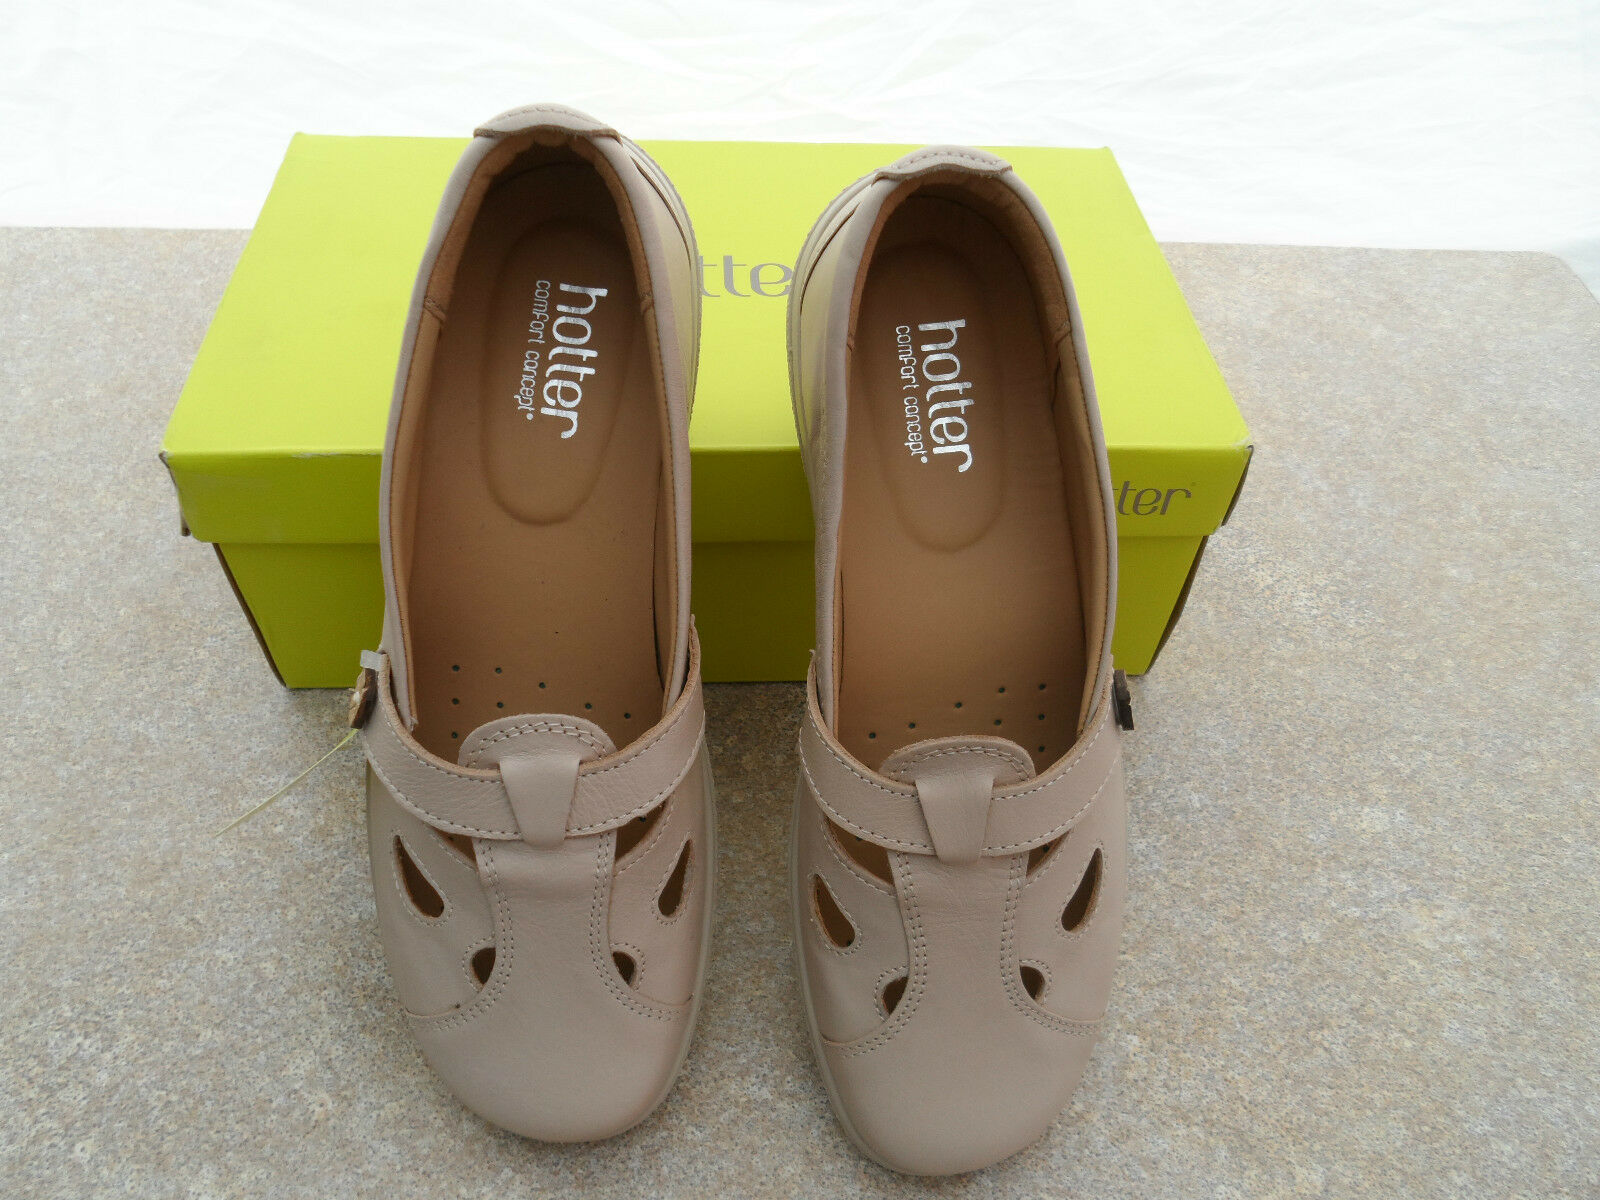 HOTTER SOFT BEIGE FLAT SLIP ON LEATHER NIRVANNA FLAT BEIGE SHOES SIZE 5.5 NEW IN BOX b6ccf2